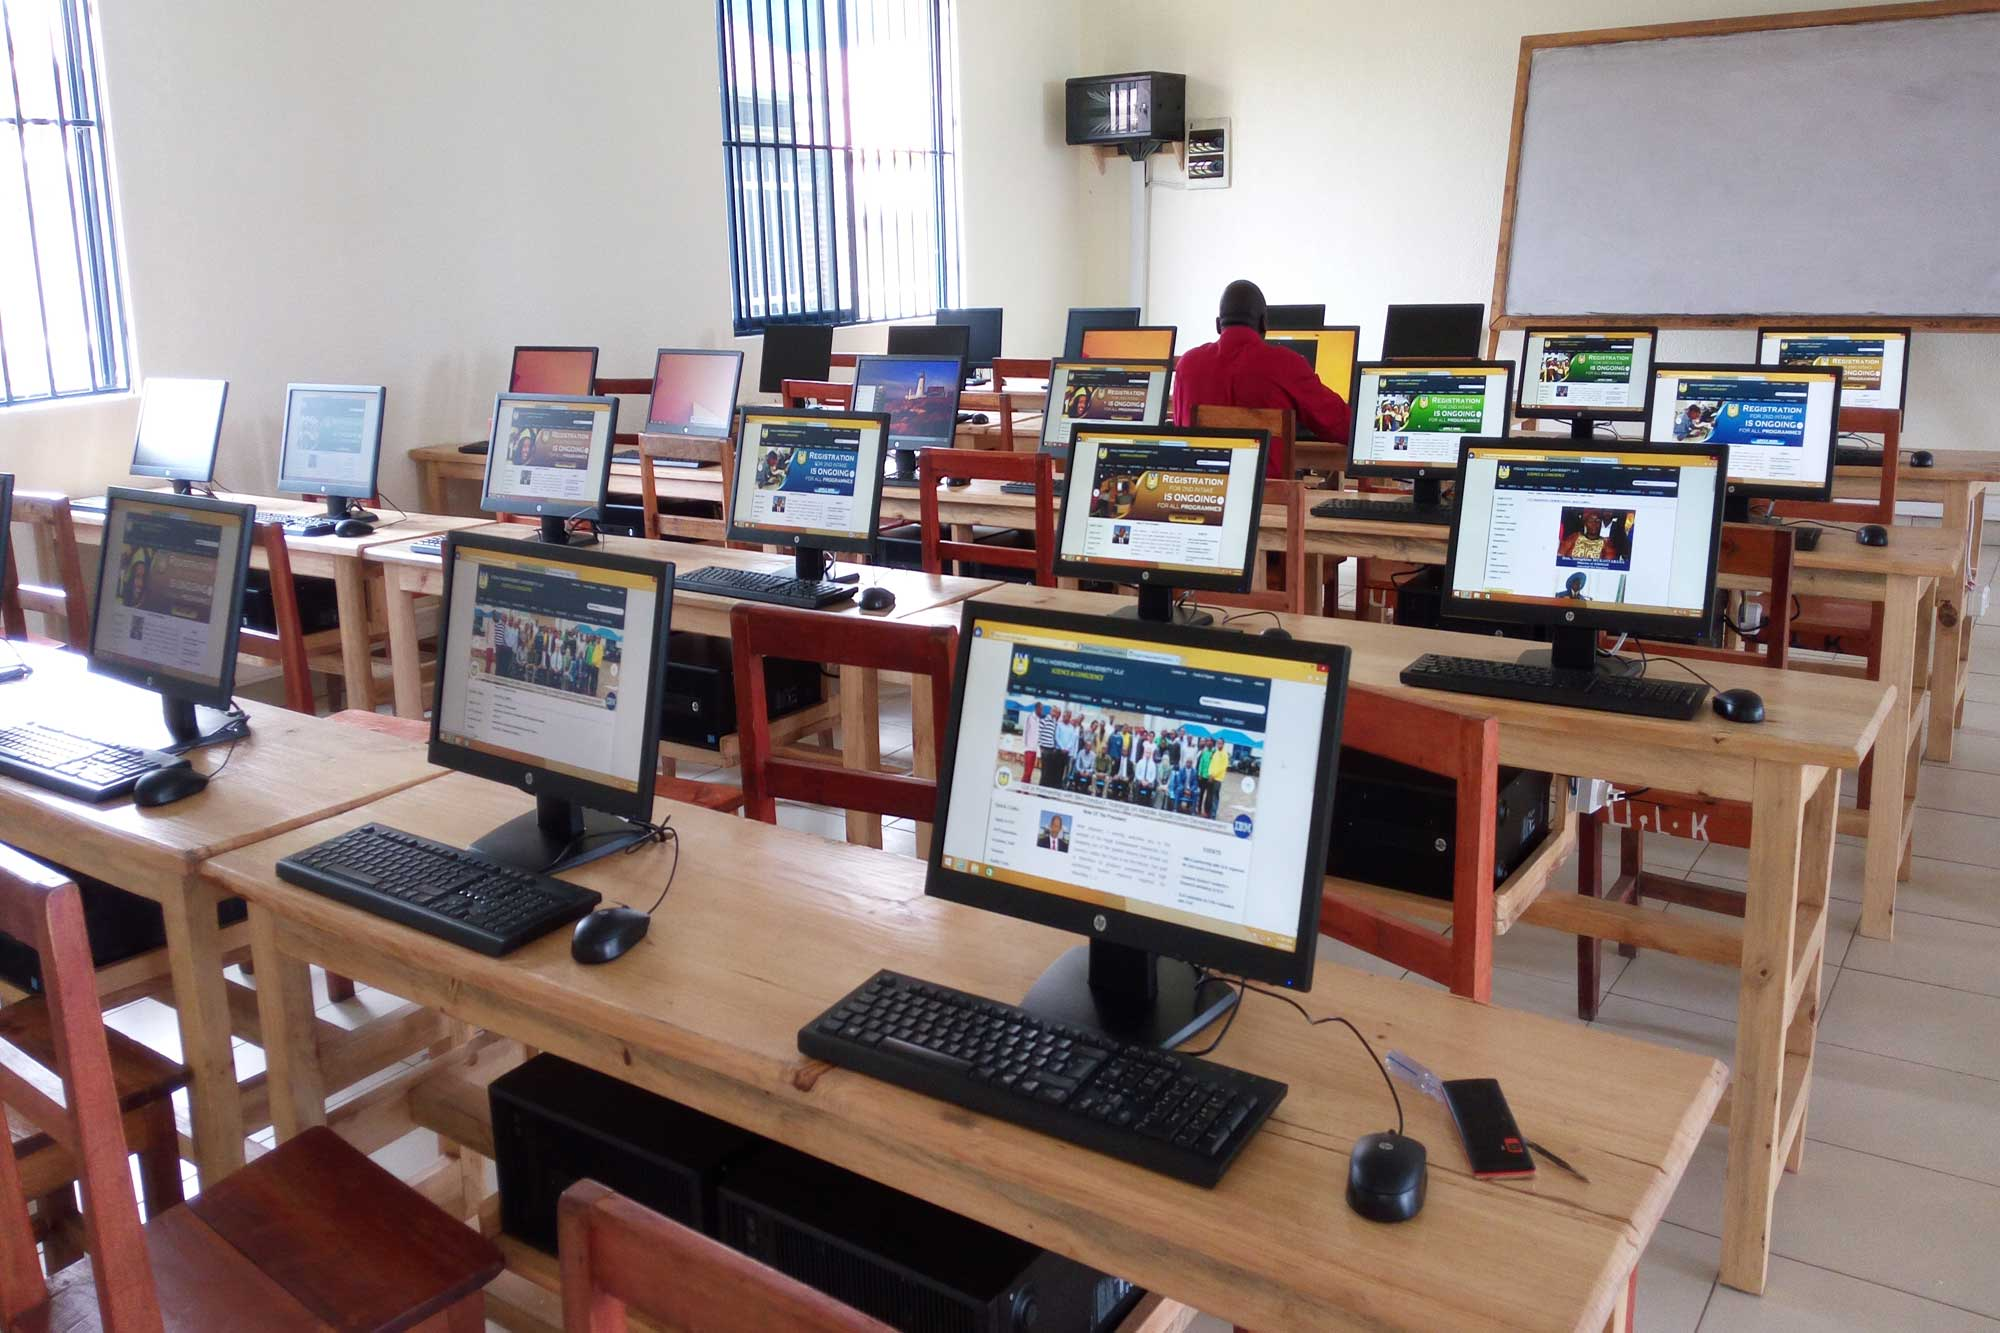 Computer-Science-Lab-Launch-at-ULK-Gisenyi-Campus